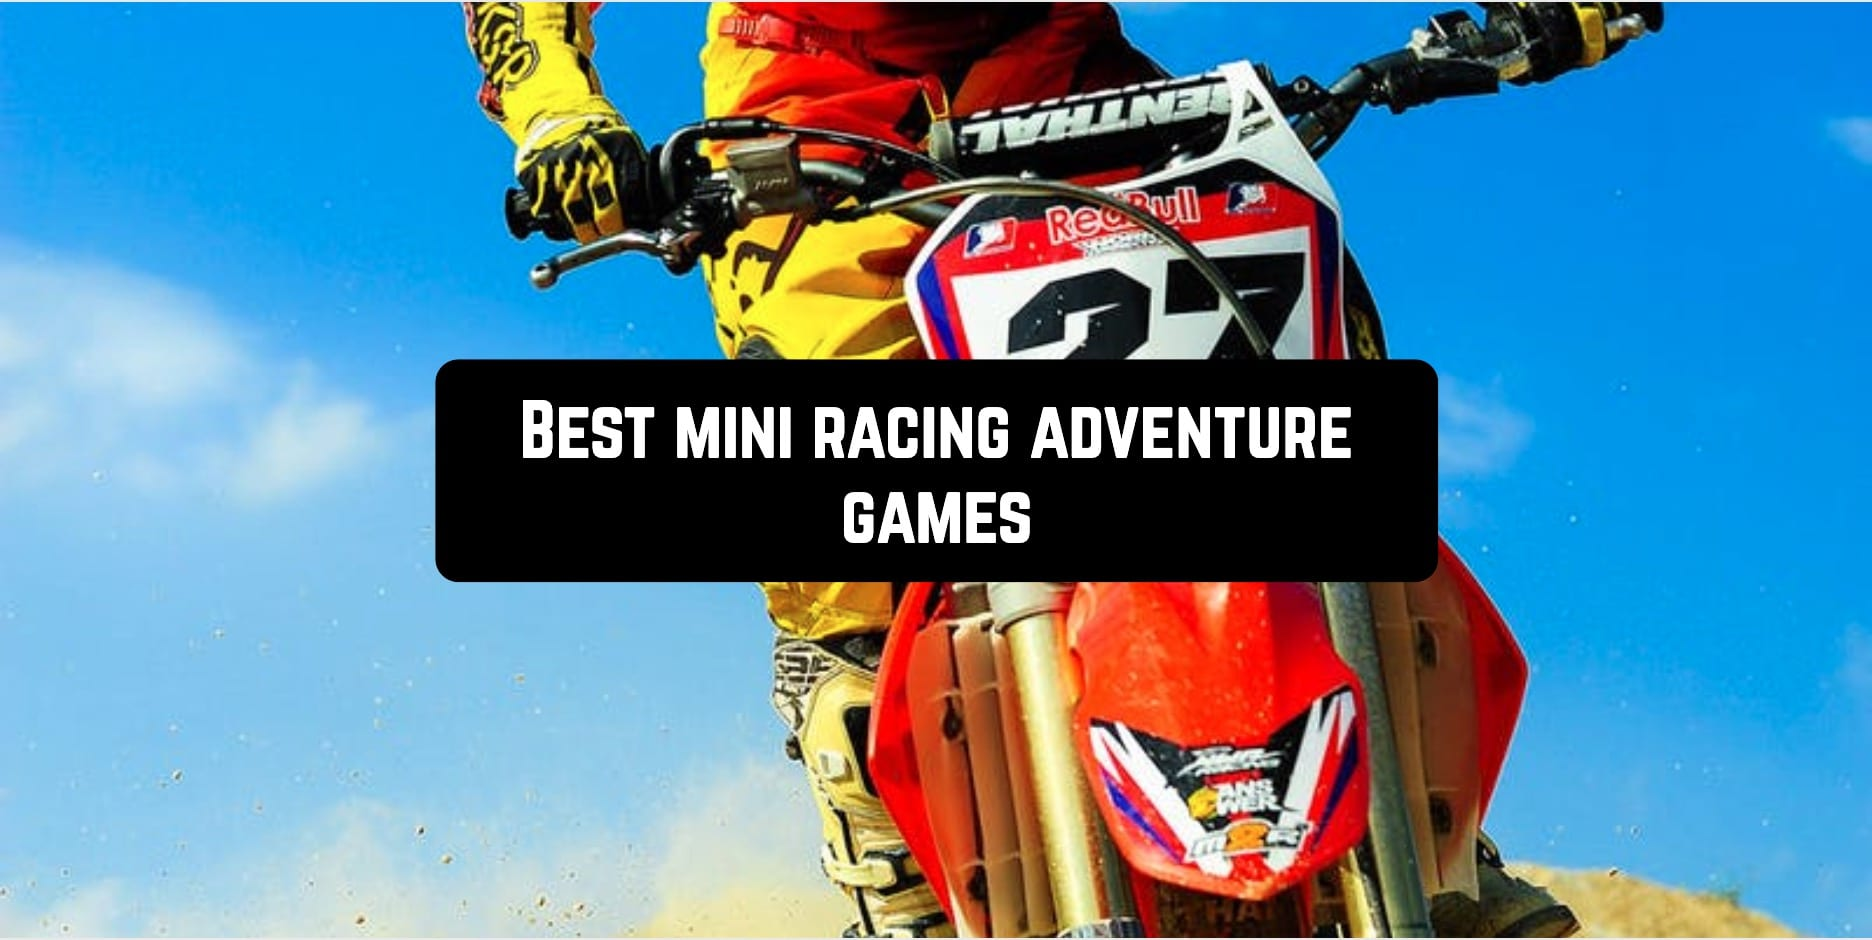 Best mini racing adventure games